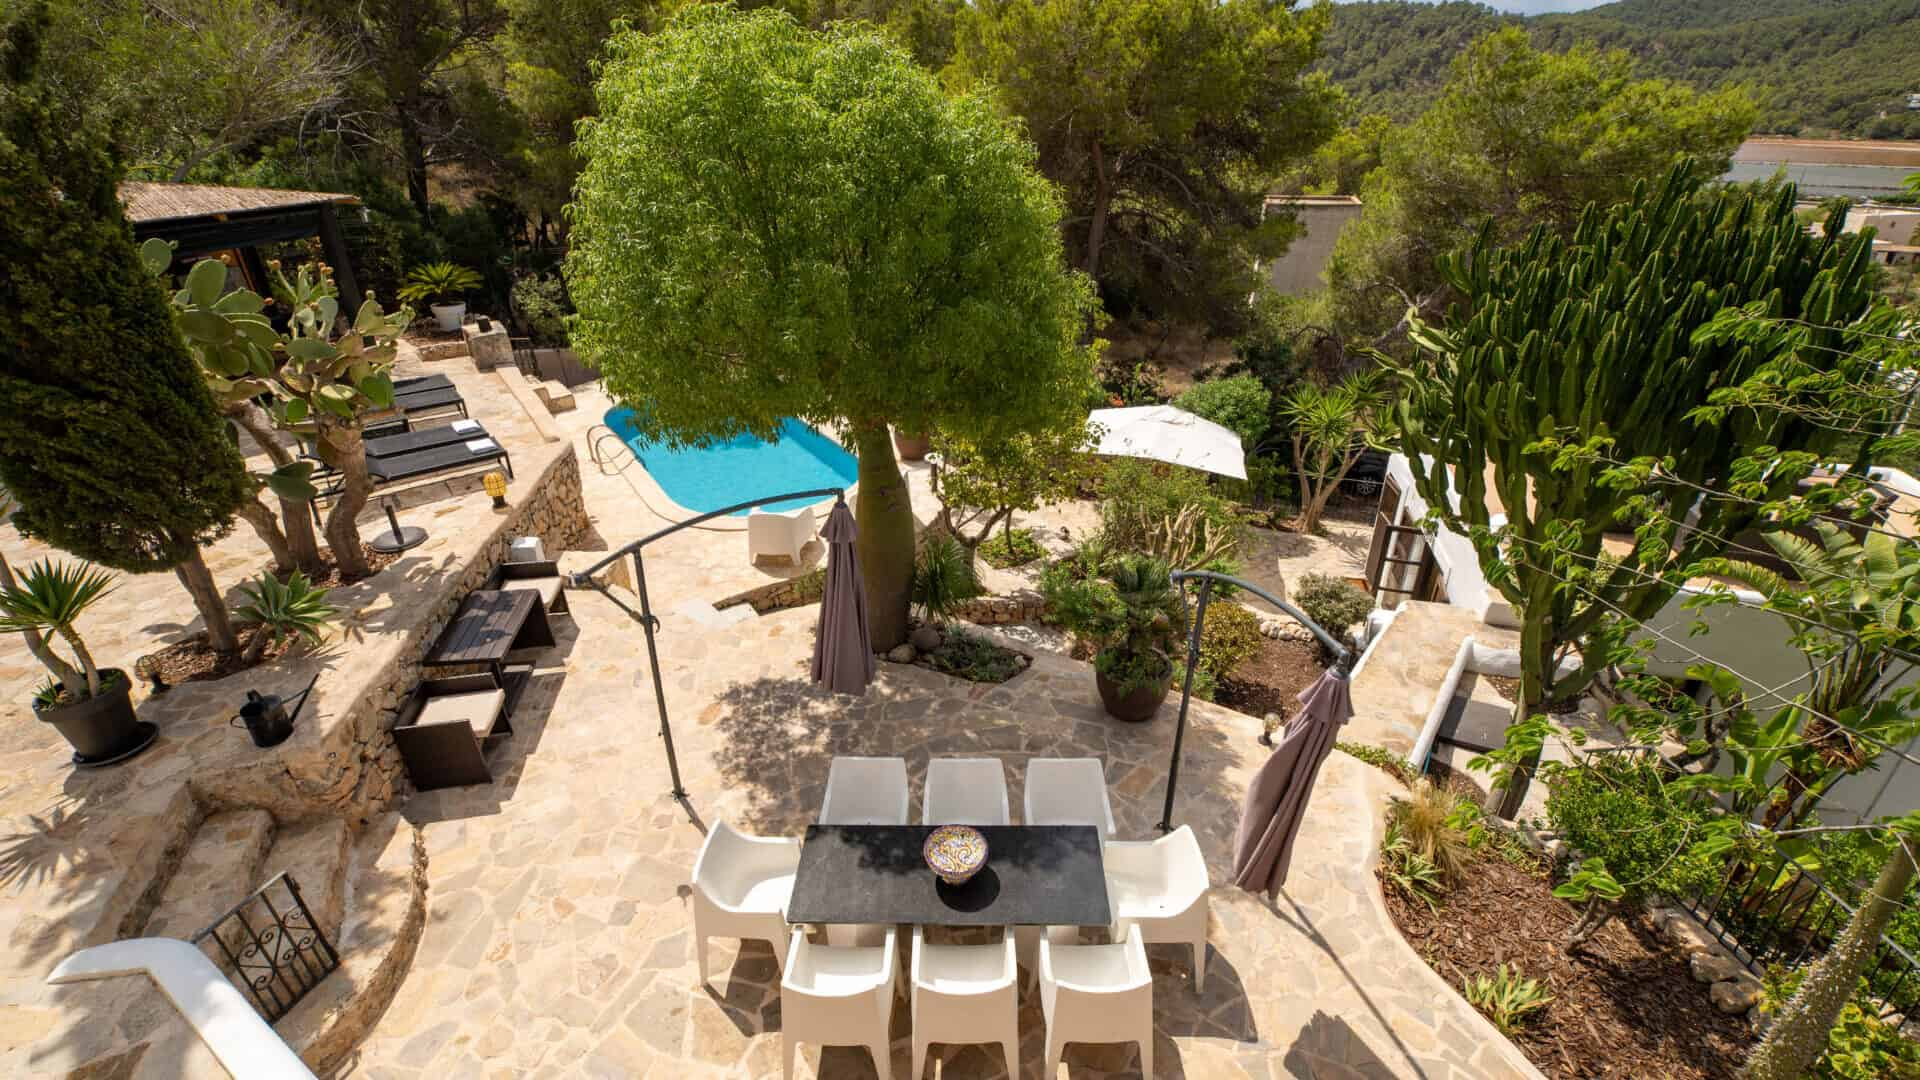 Las Salinas 4 bedroom holiday  Charming finca for rent with sea view